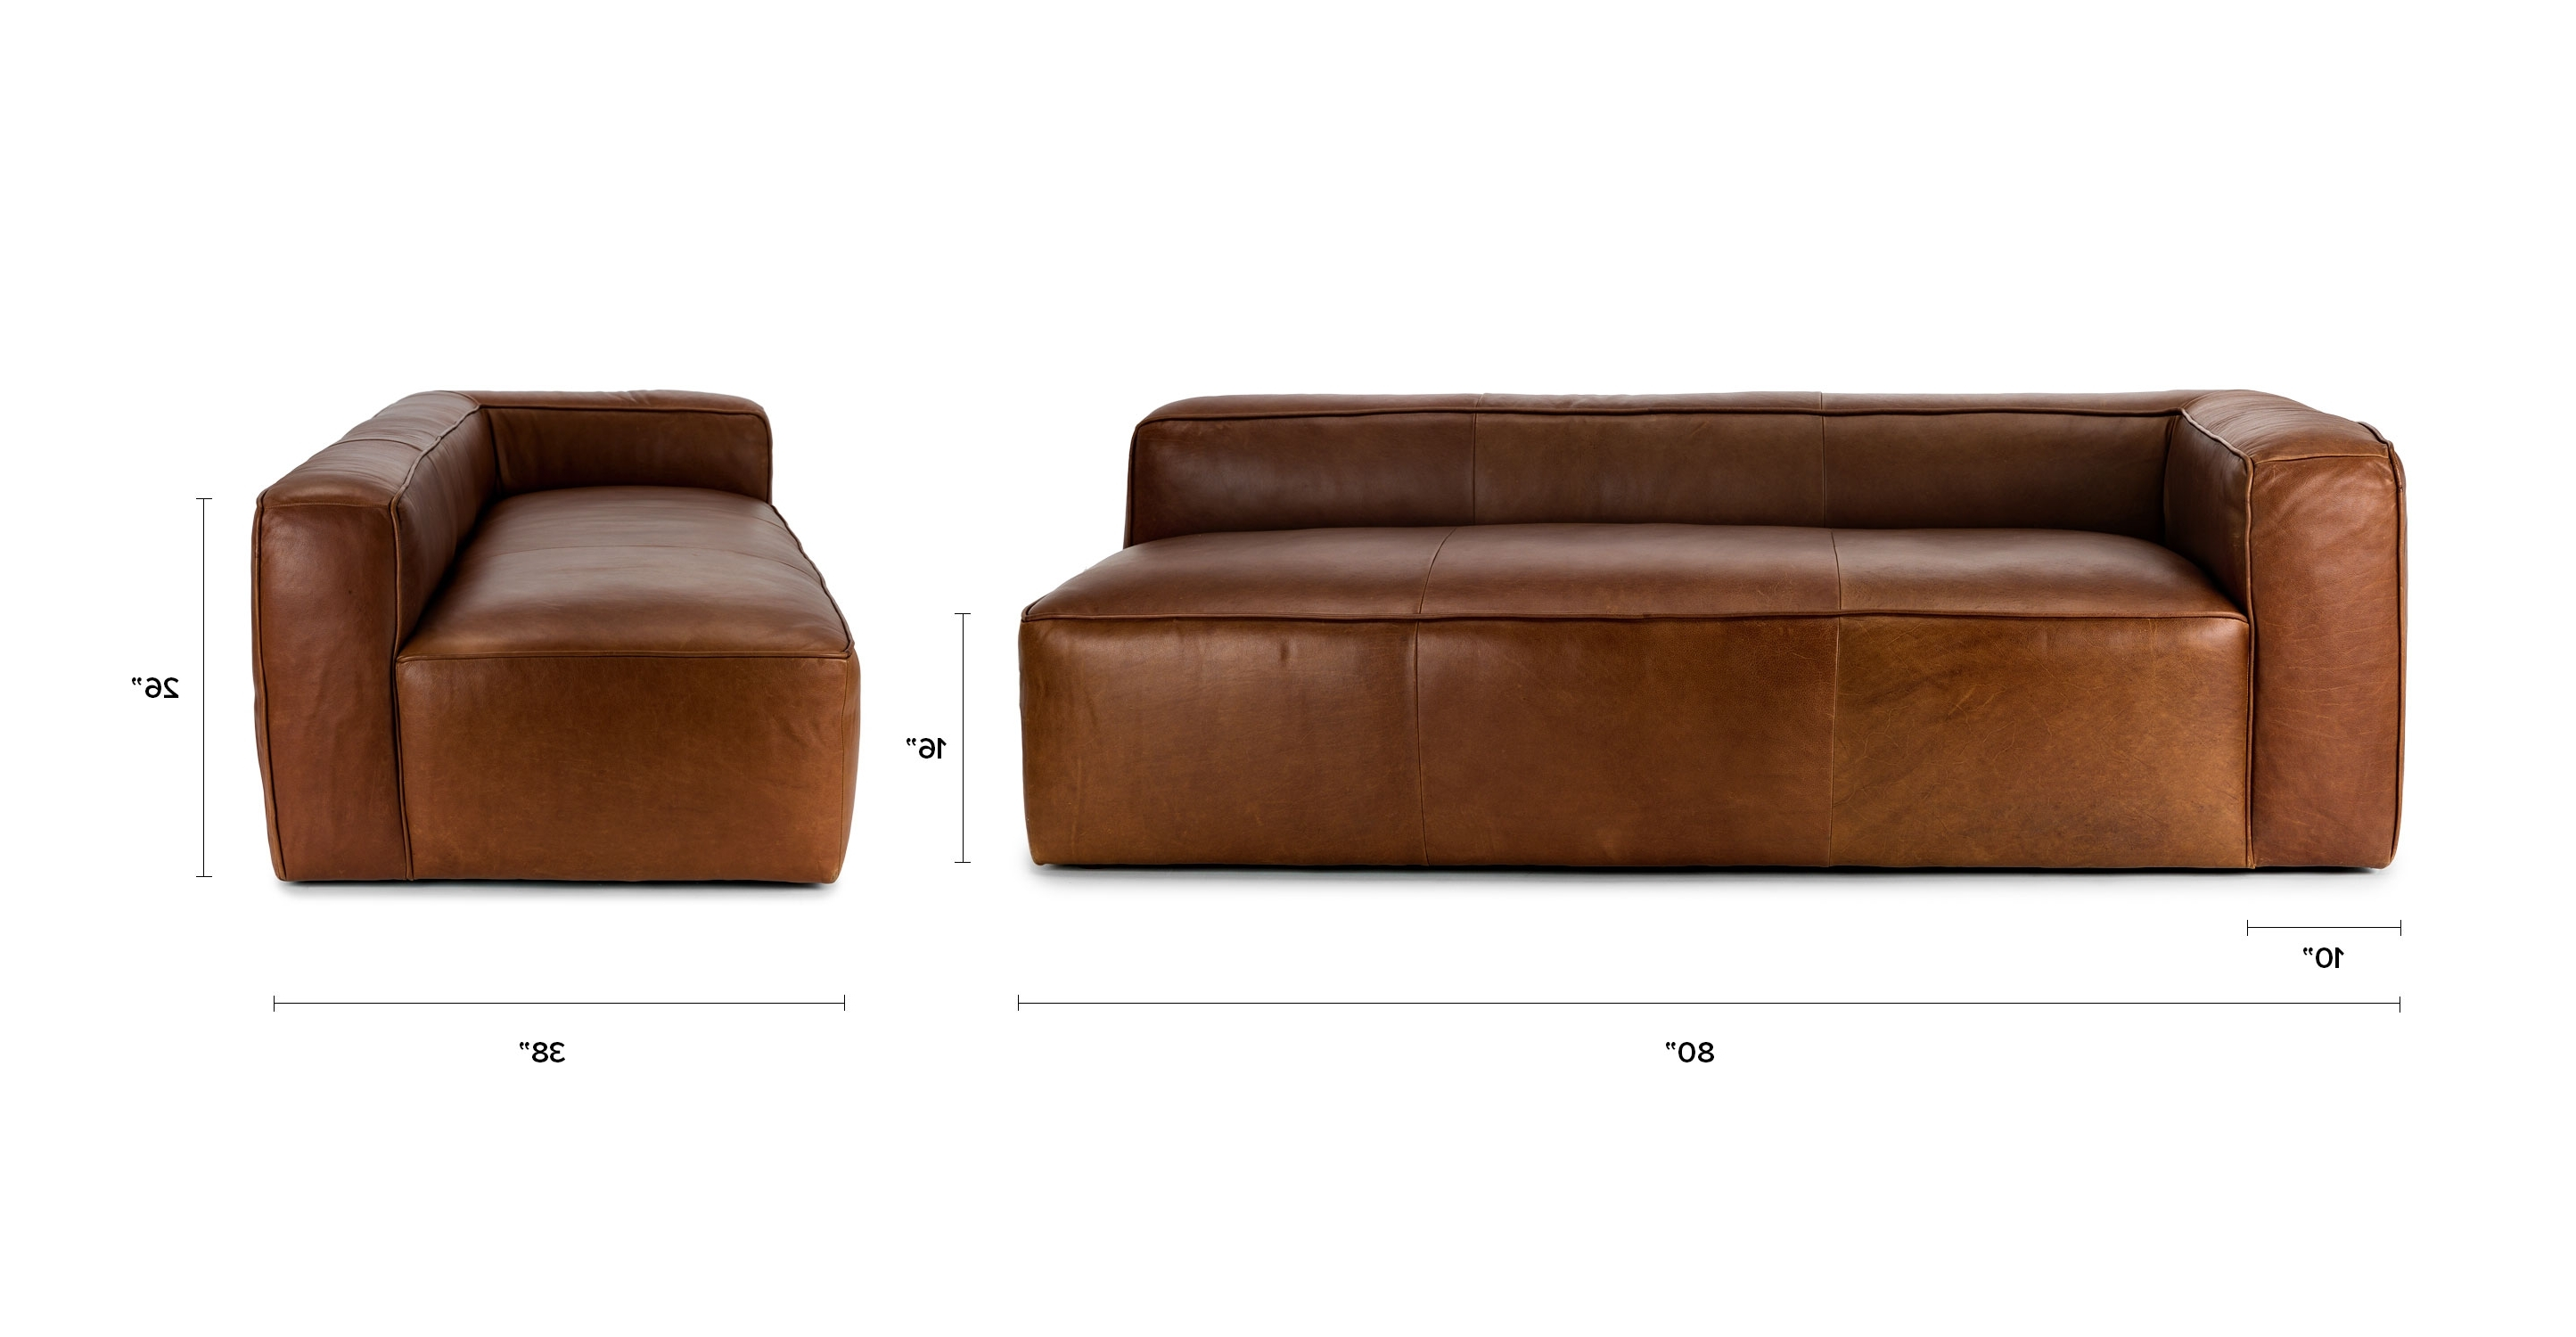 Article Mello Modern In Most Up To Date Niagara Sectional Sofas (View 18 of 20)